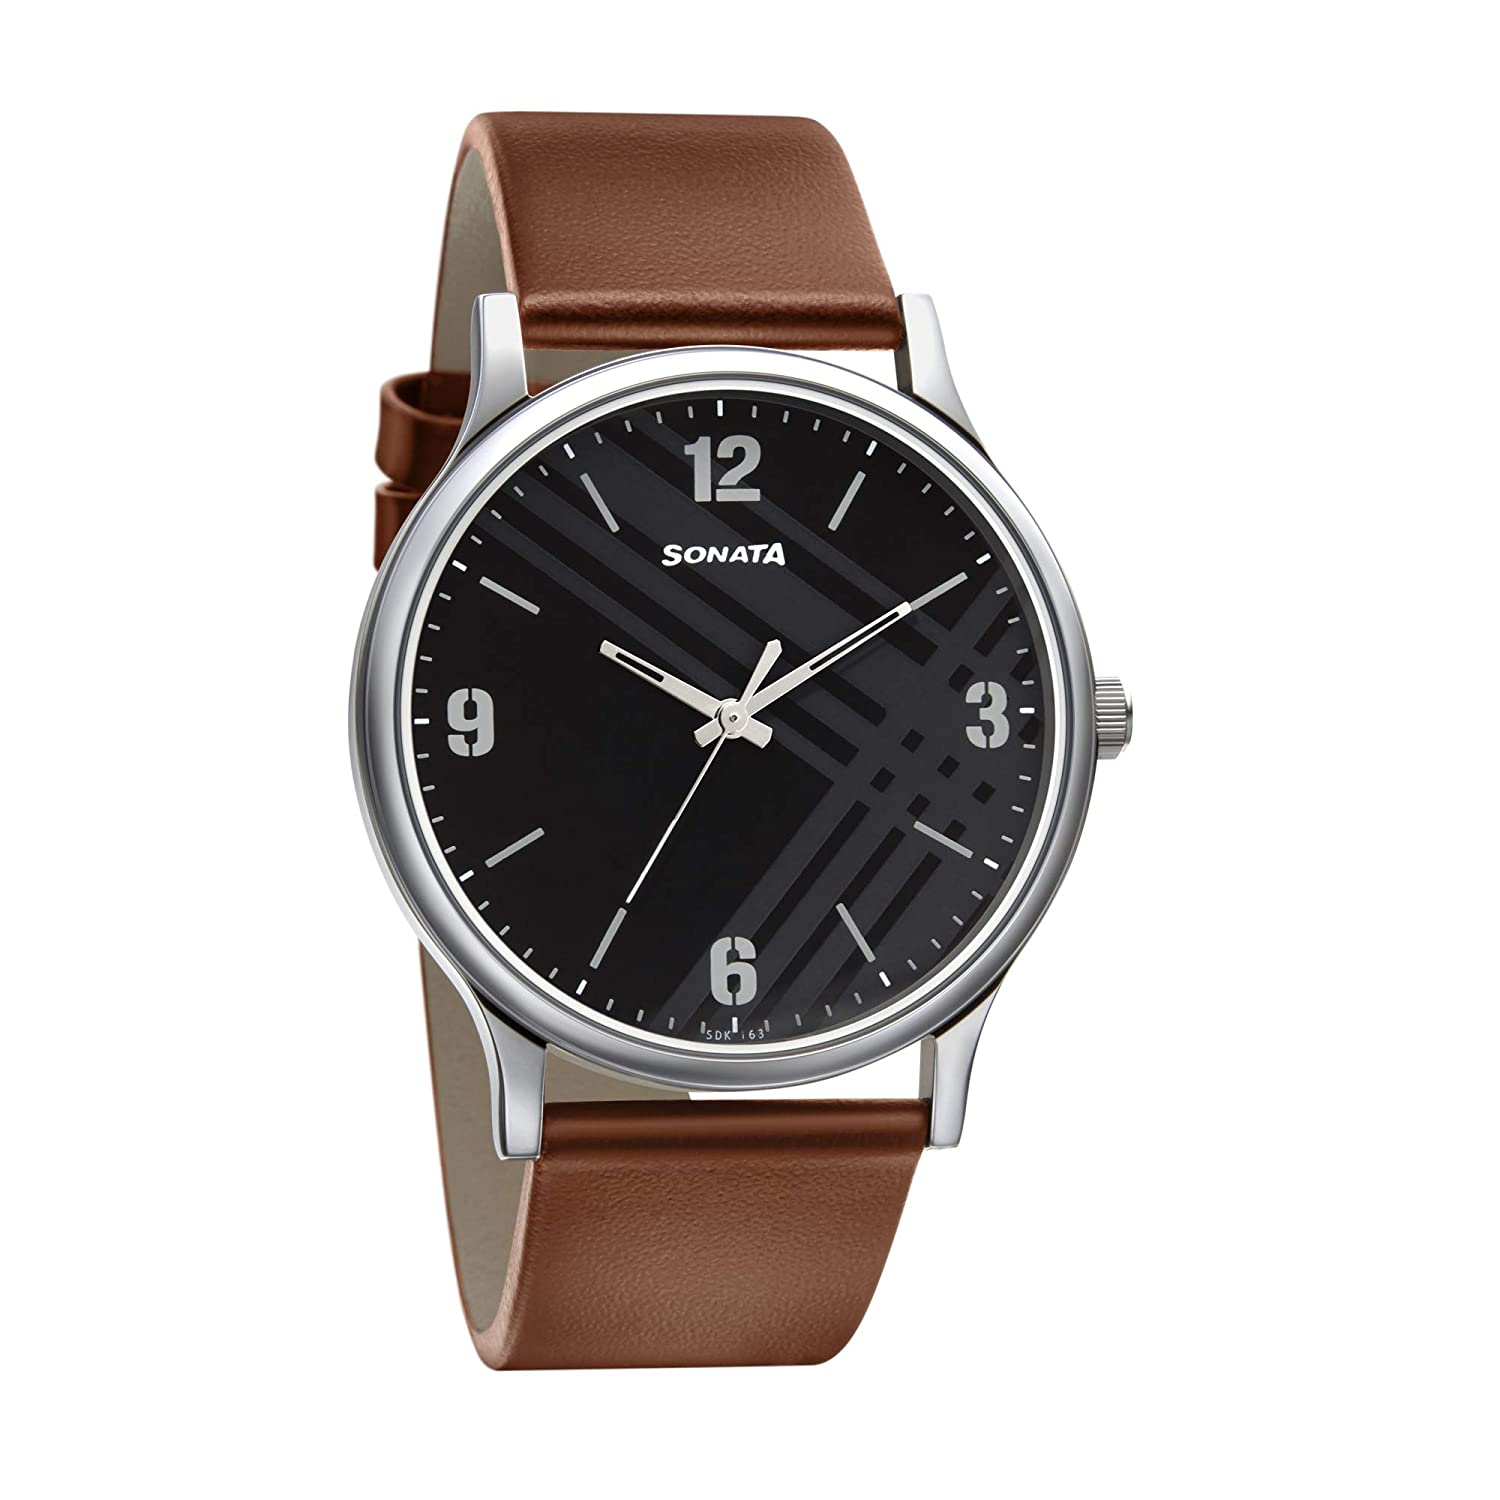 Sonata Best Mens Watches Under 1000 Rupees in India